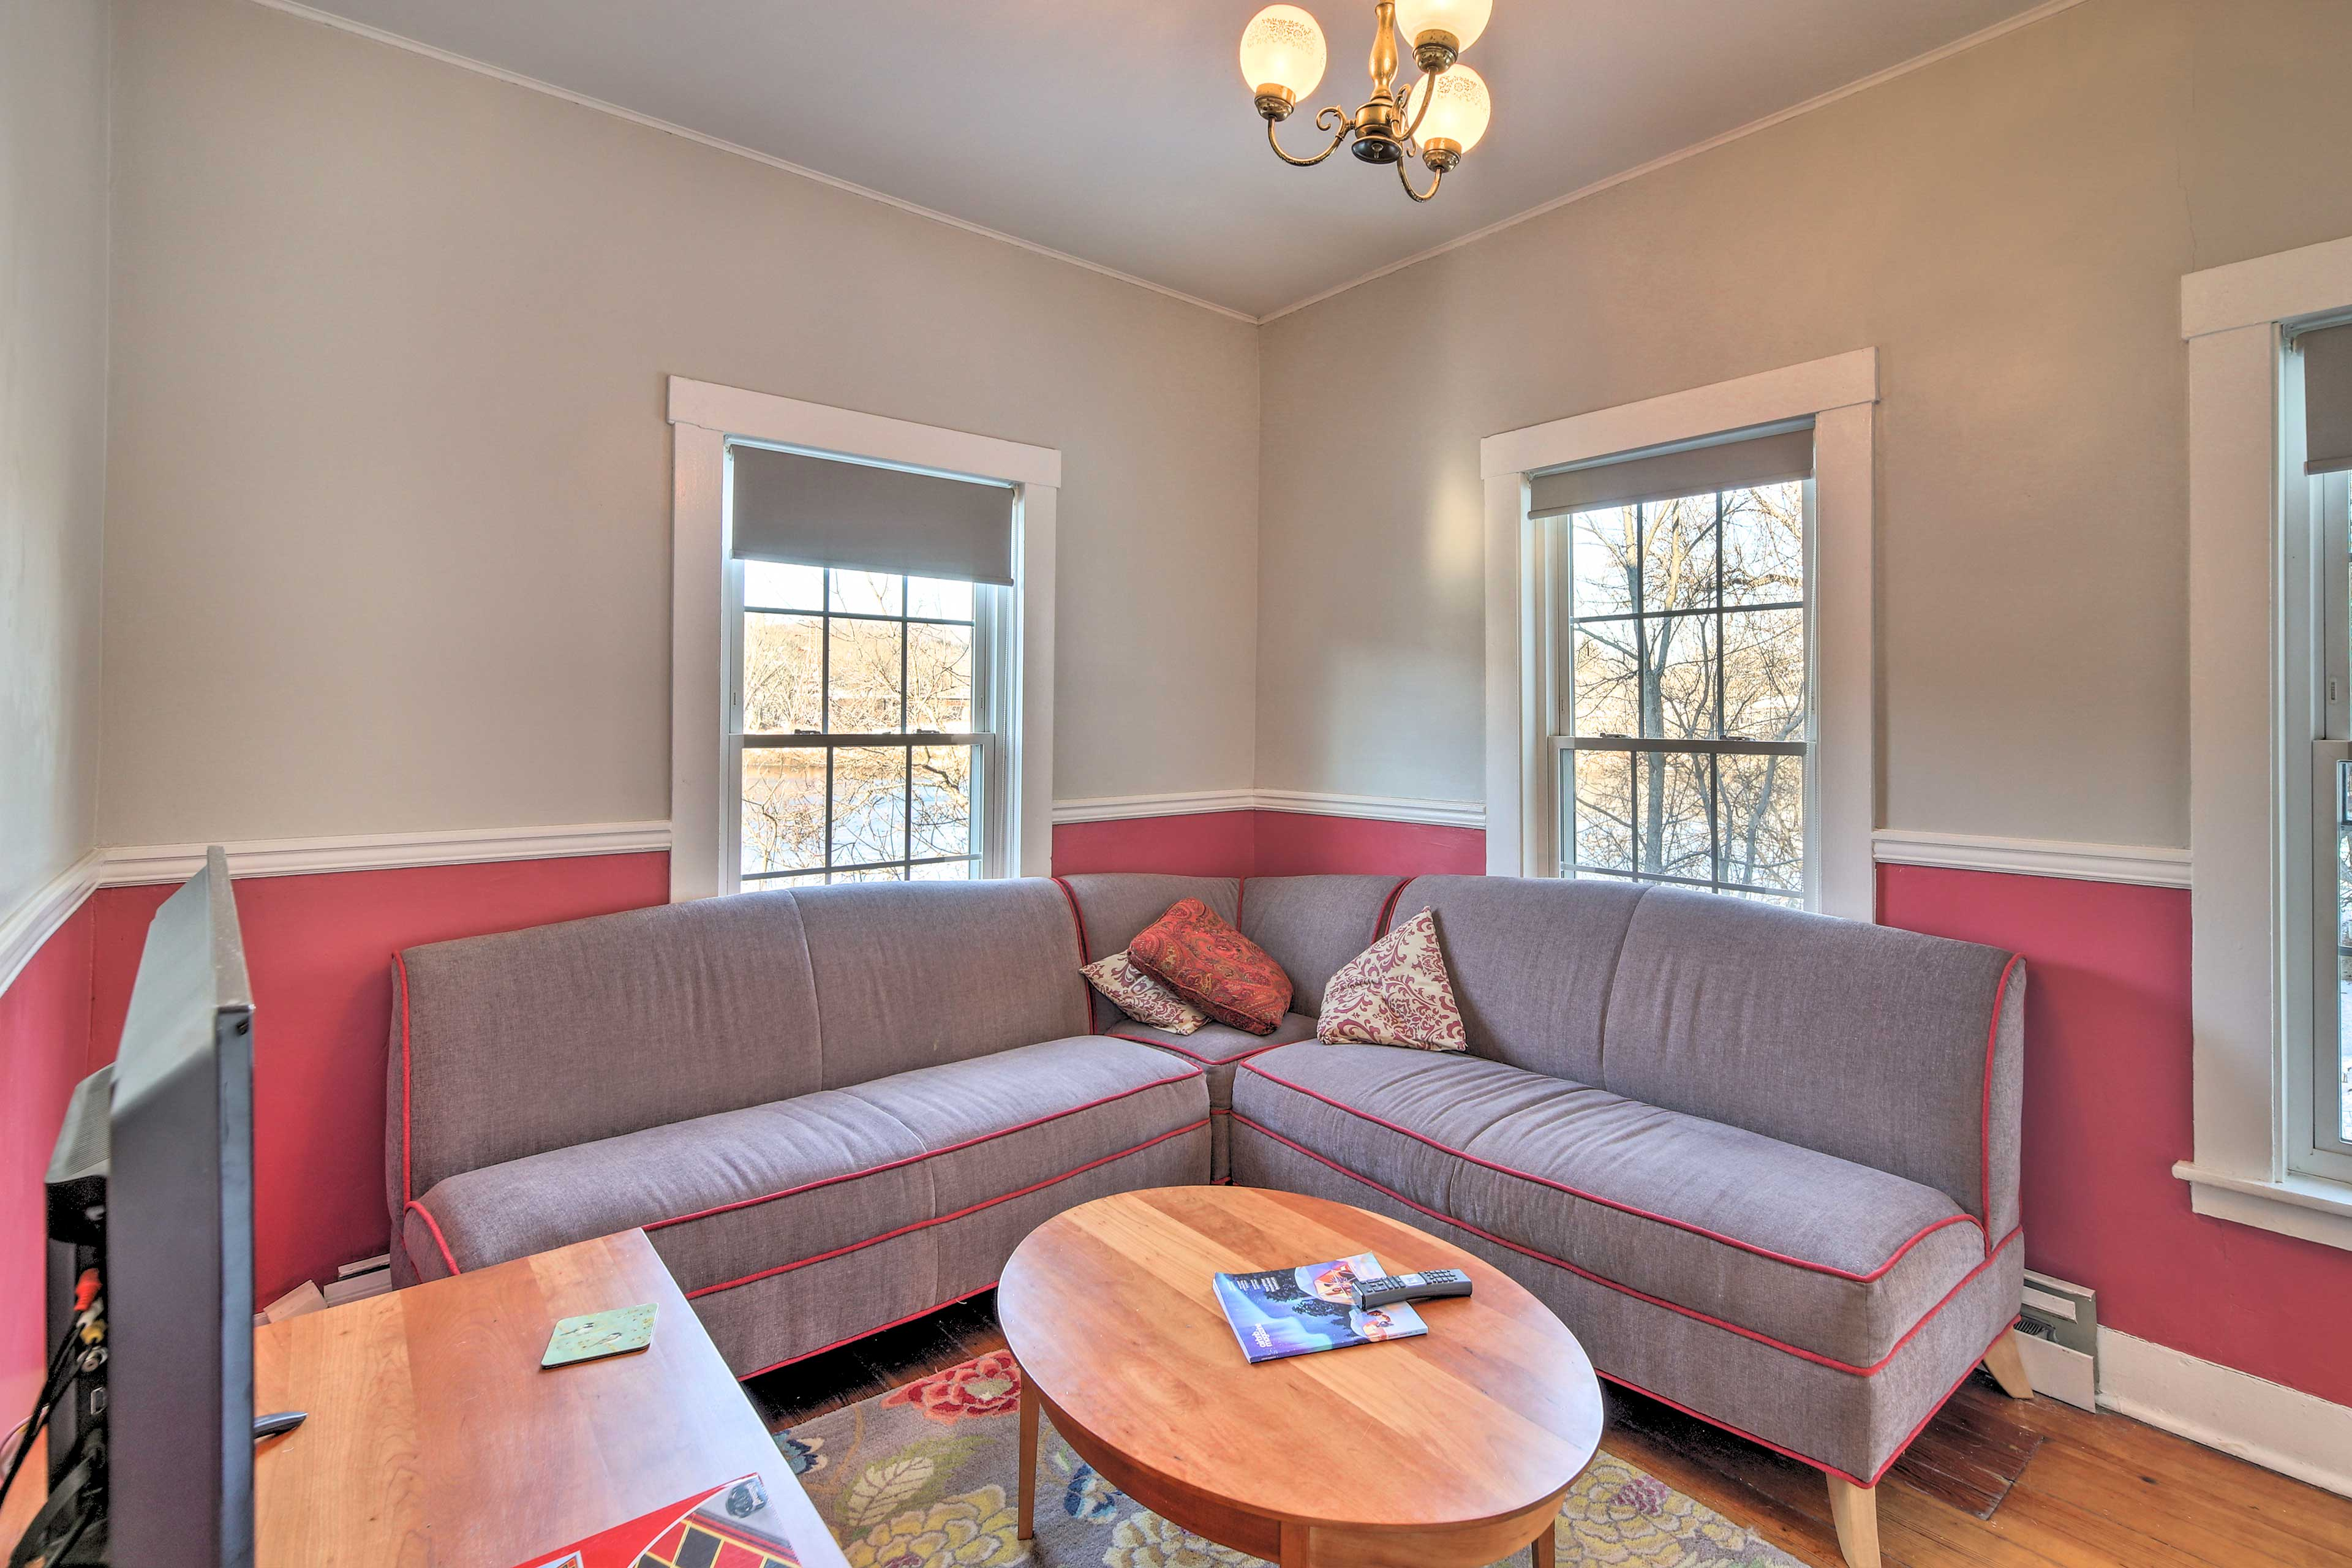 A second living area has an L-shaped sofa.